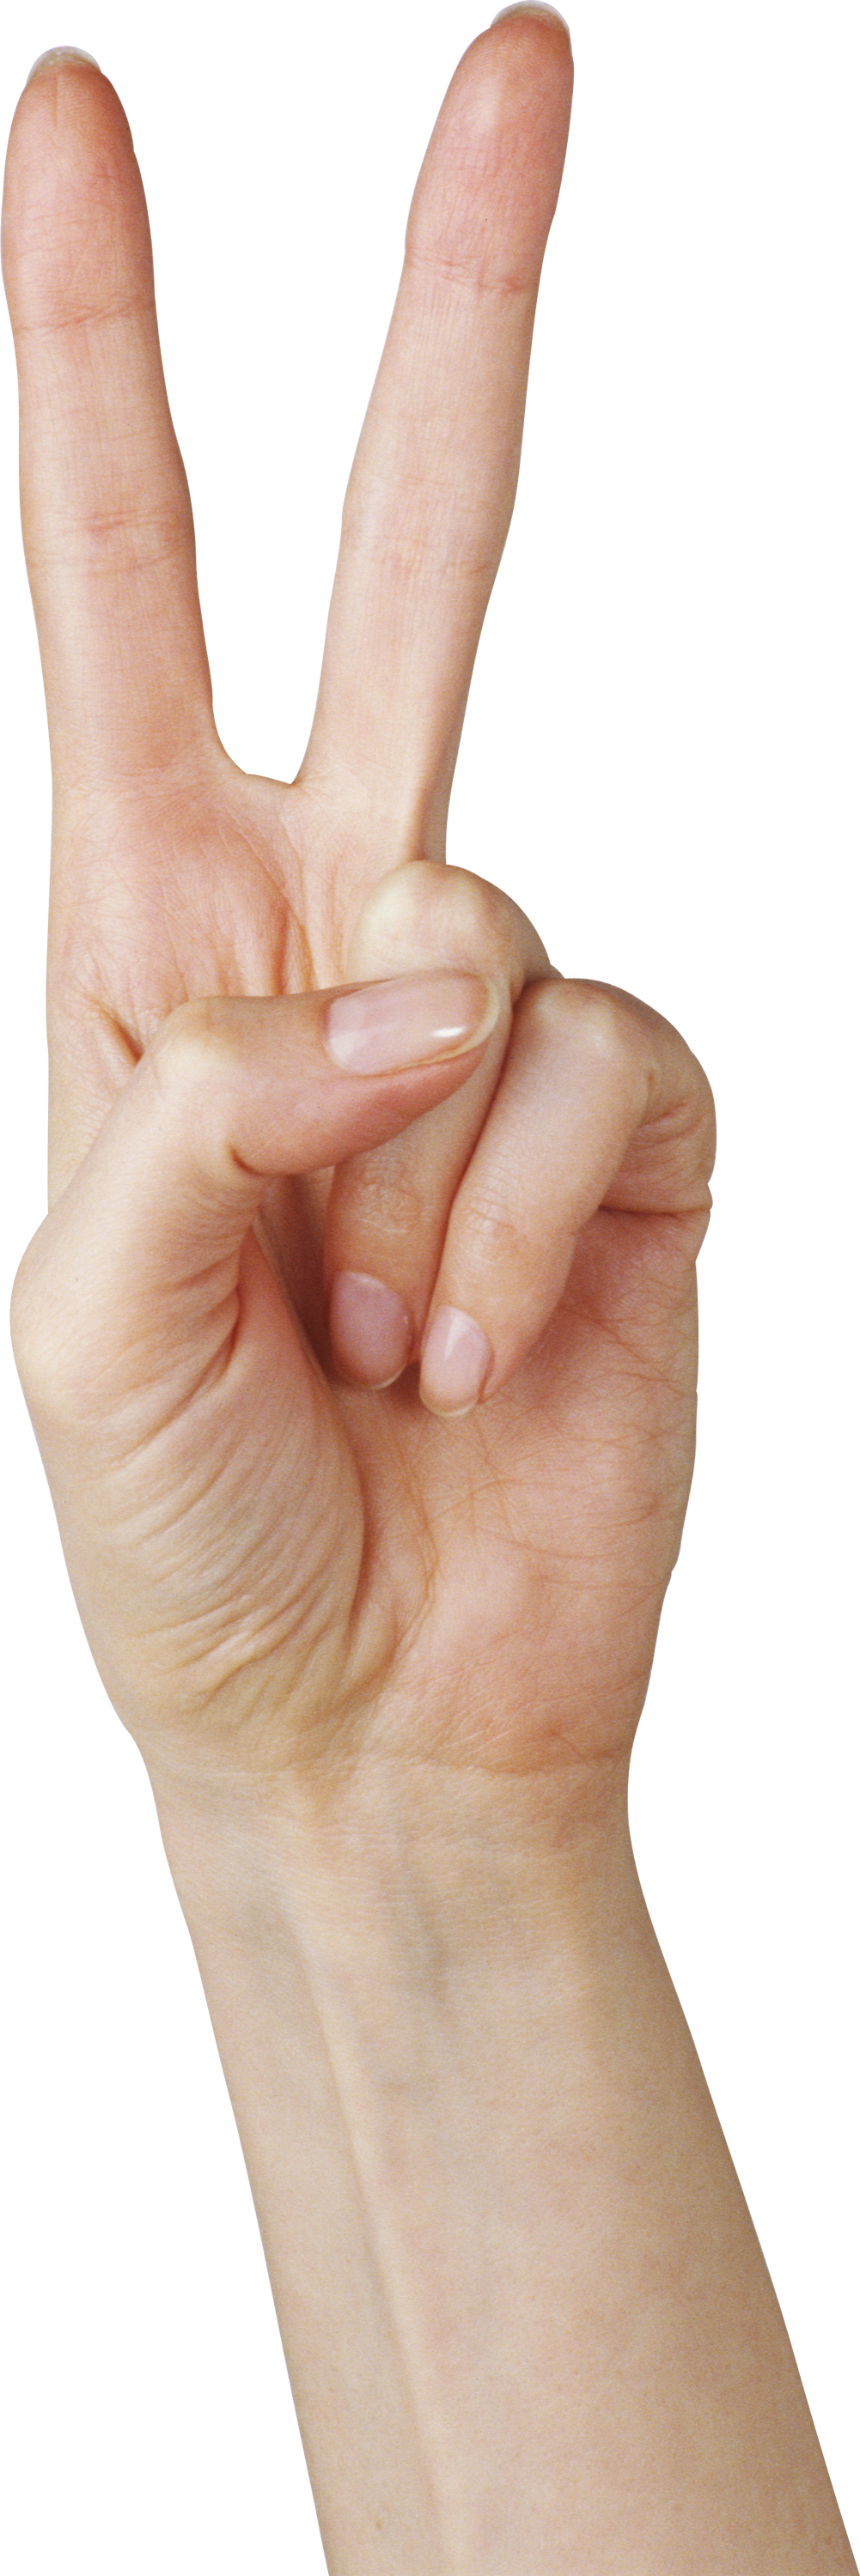 Hands of god png. Free images pictures download